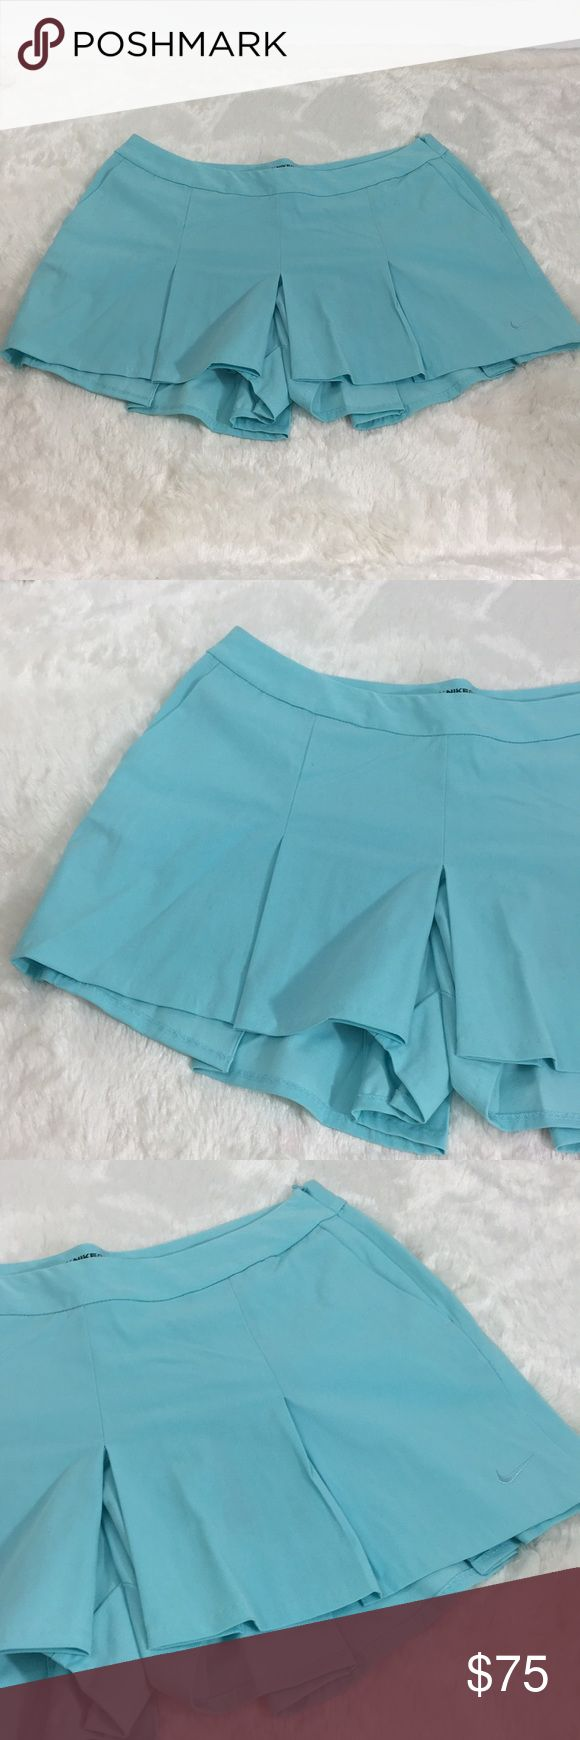 Aqua Nike Golf Dri-fit Skort Tennis Pleated Skirt I shipped your item today! I included a banner but I have had a lot of homework and haven't been able to put in the time to make the stickers perfect so i'm going to perfect them this weekend and send you them next week(: I didn't want to make you wait for the cards though💕 Nike Shorts Skorts